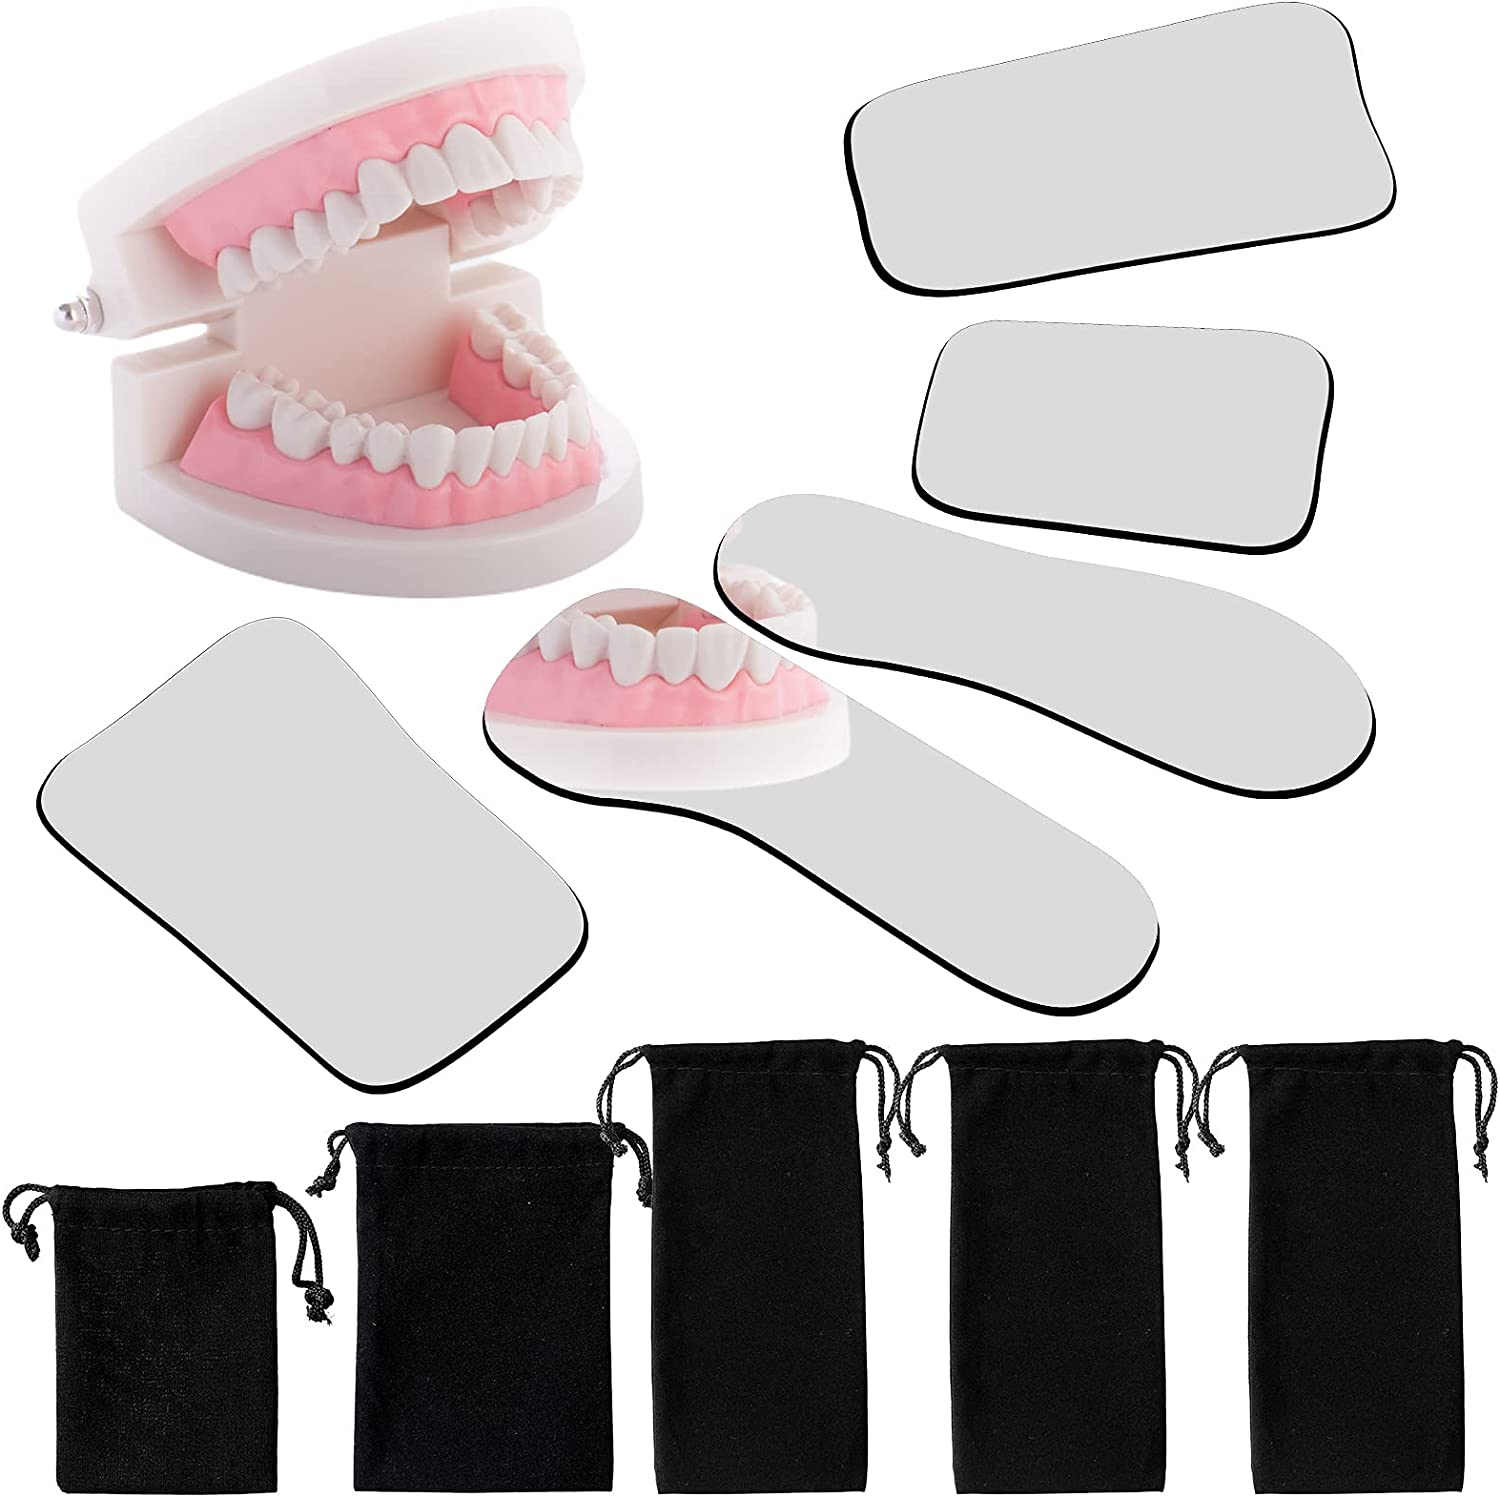 5 Pieces Dental Mouth Mirror Occlusal Reflector Mirror Intraoral Photography Mirror 2 Sided Dental Plated Glass Intraoral ...